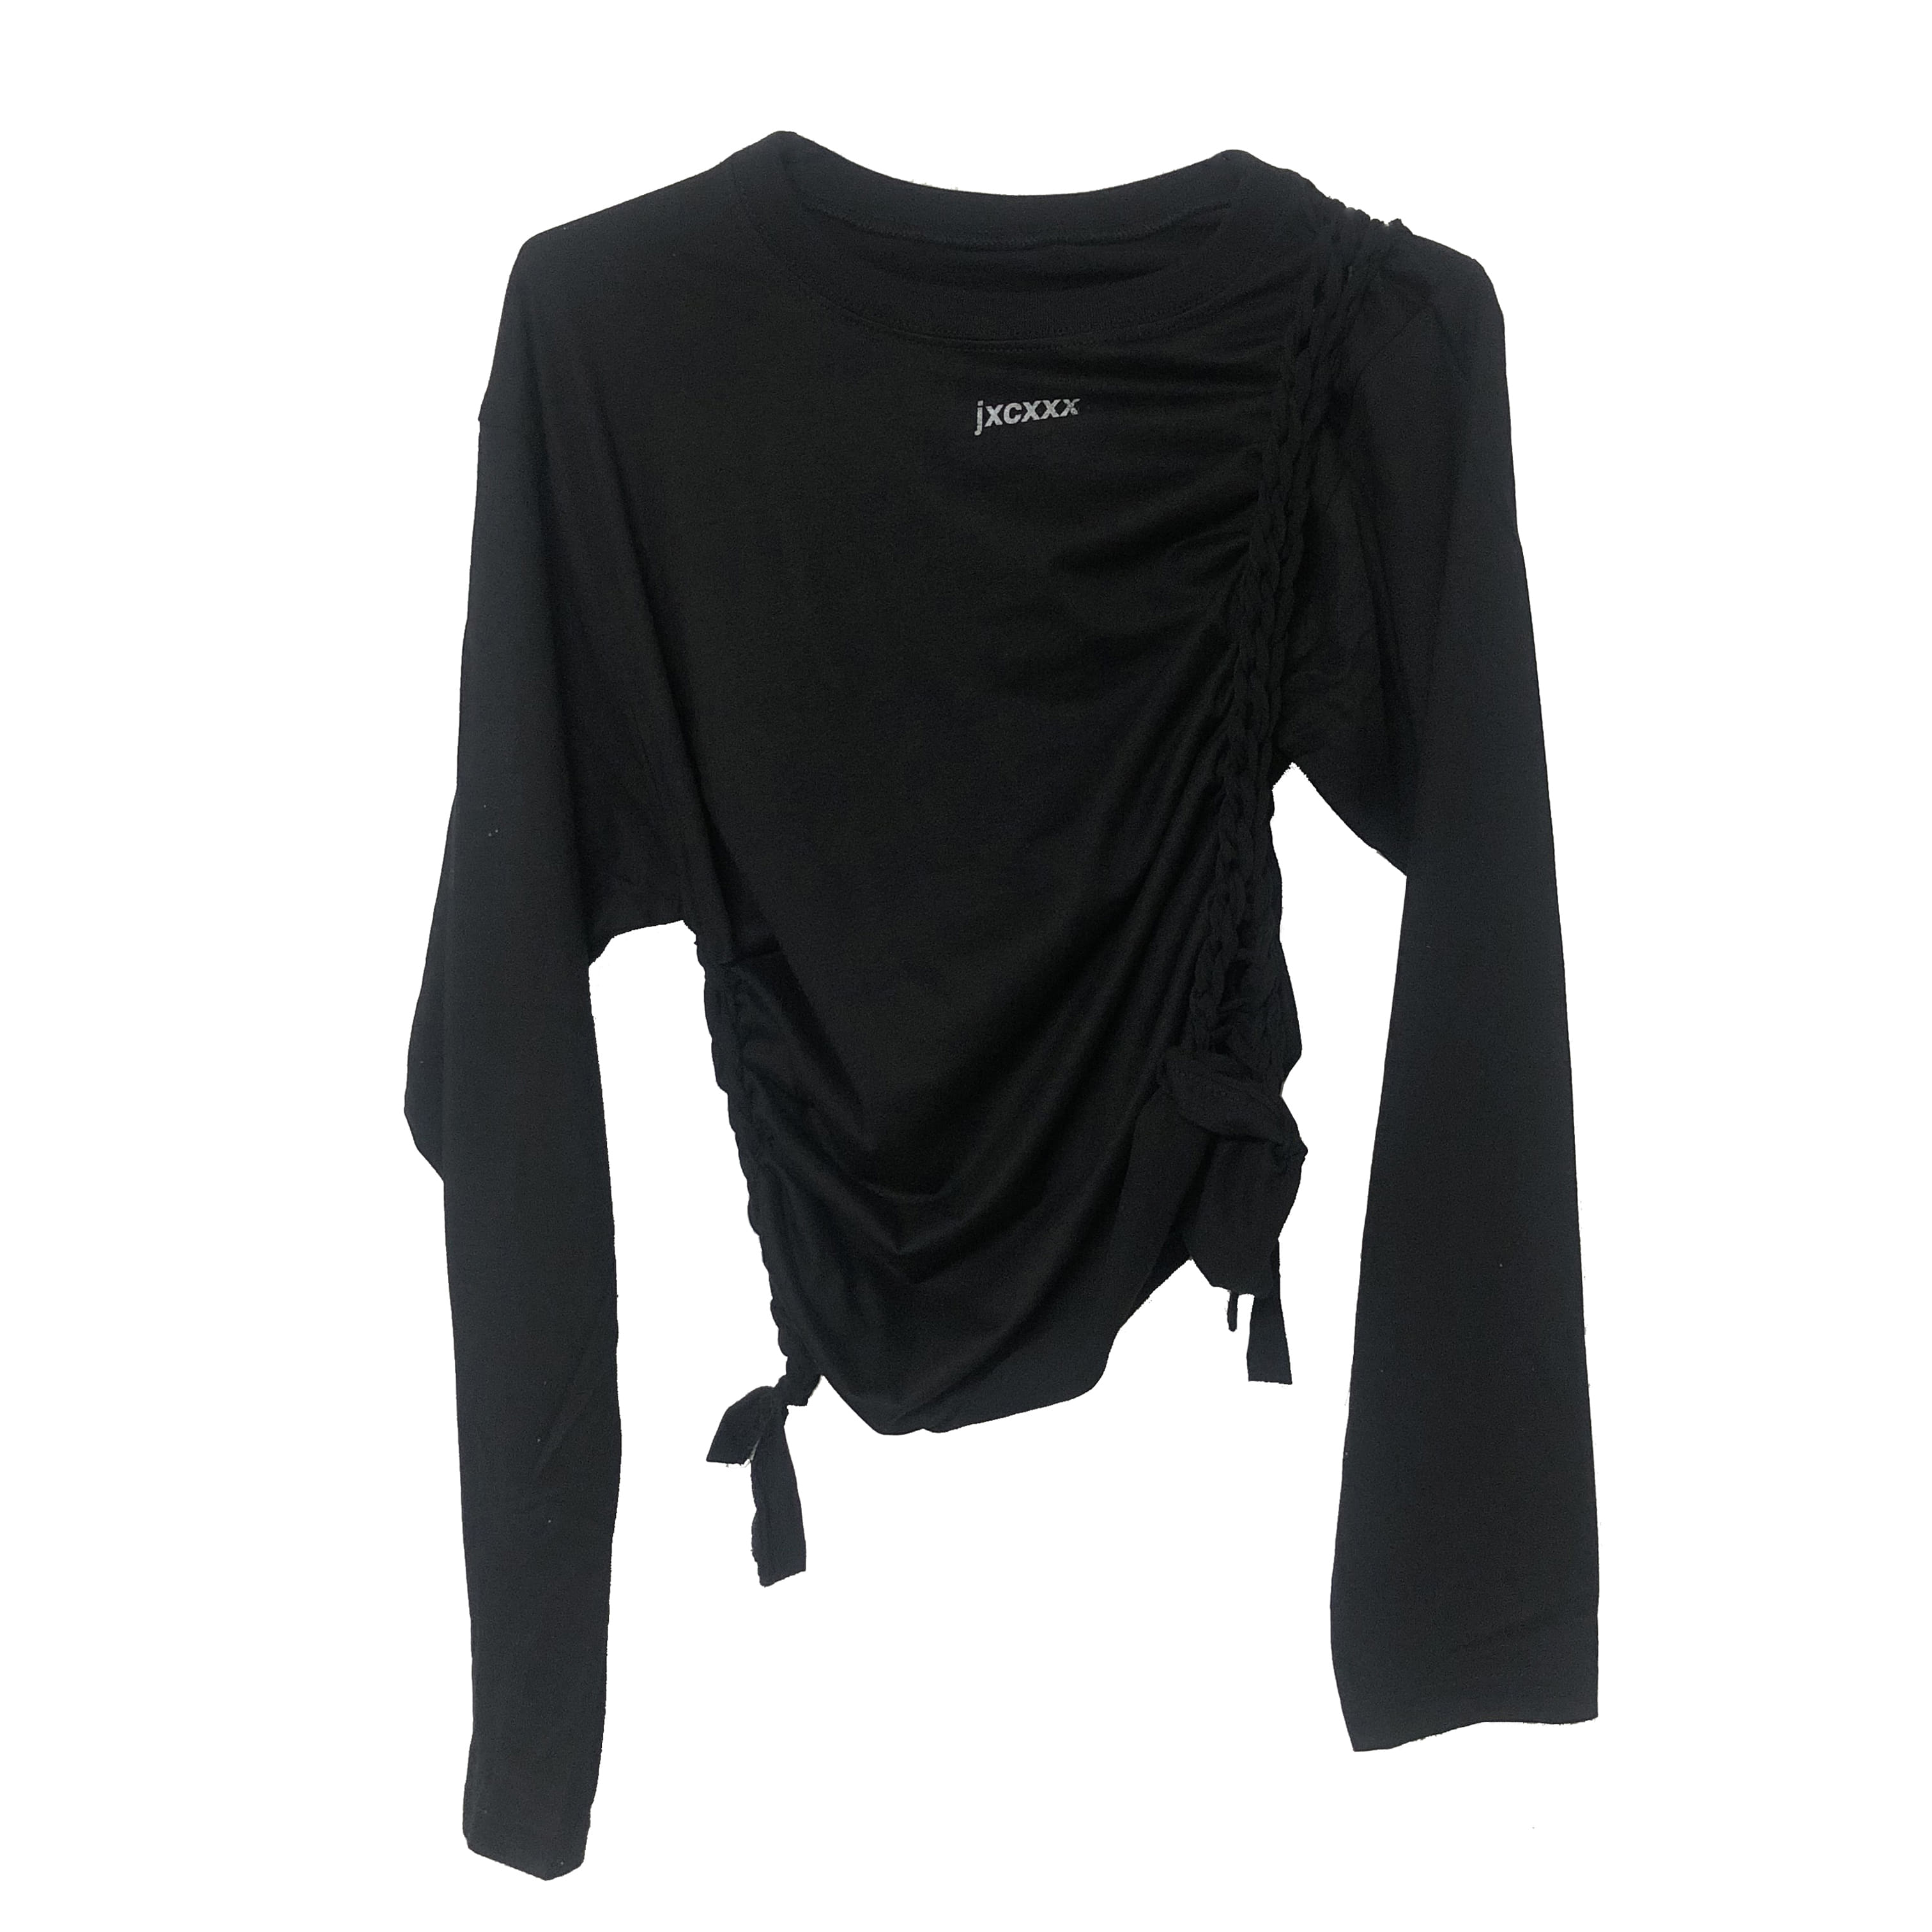 jxcxxx TWISTED LONG SLEEVES (BLACK)